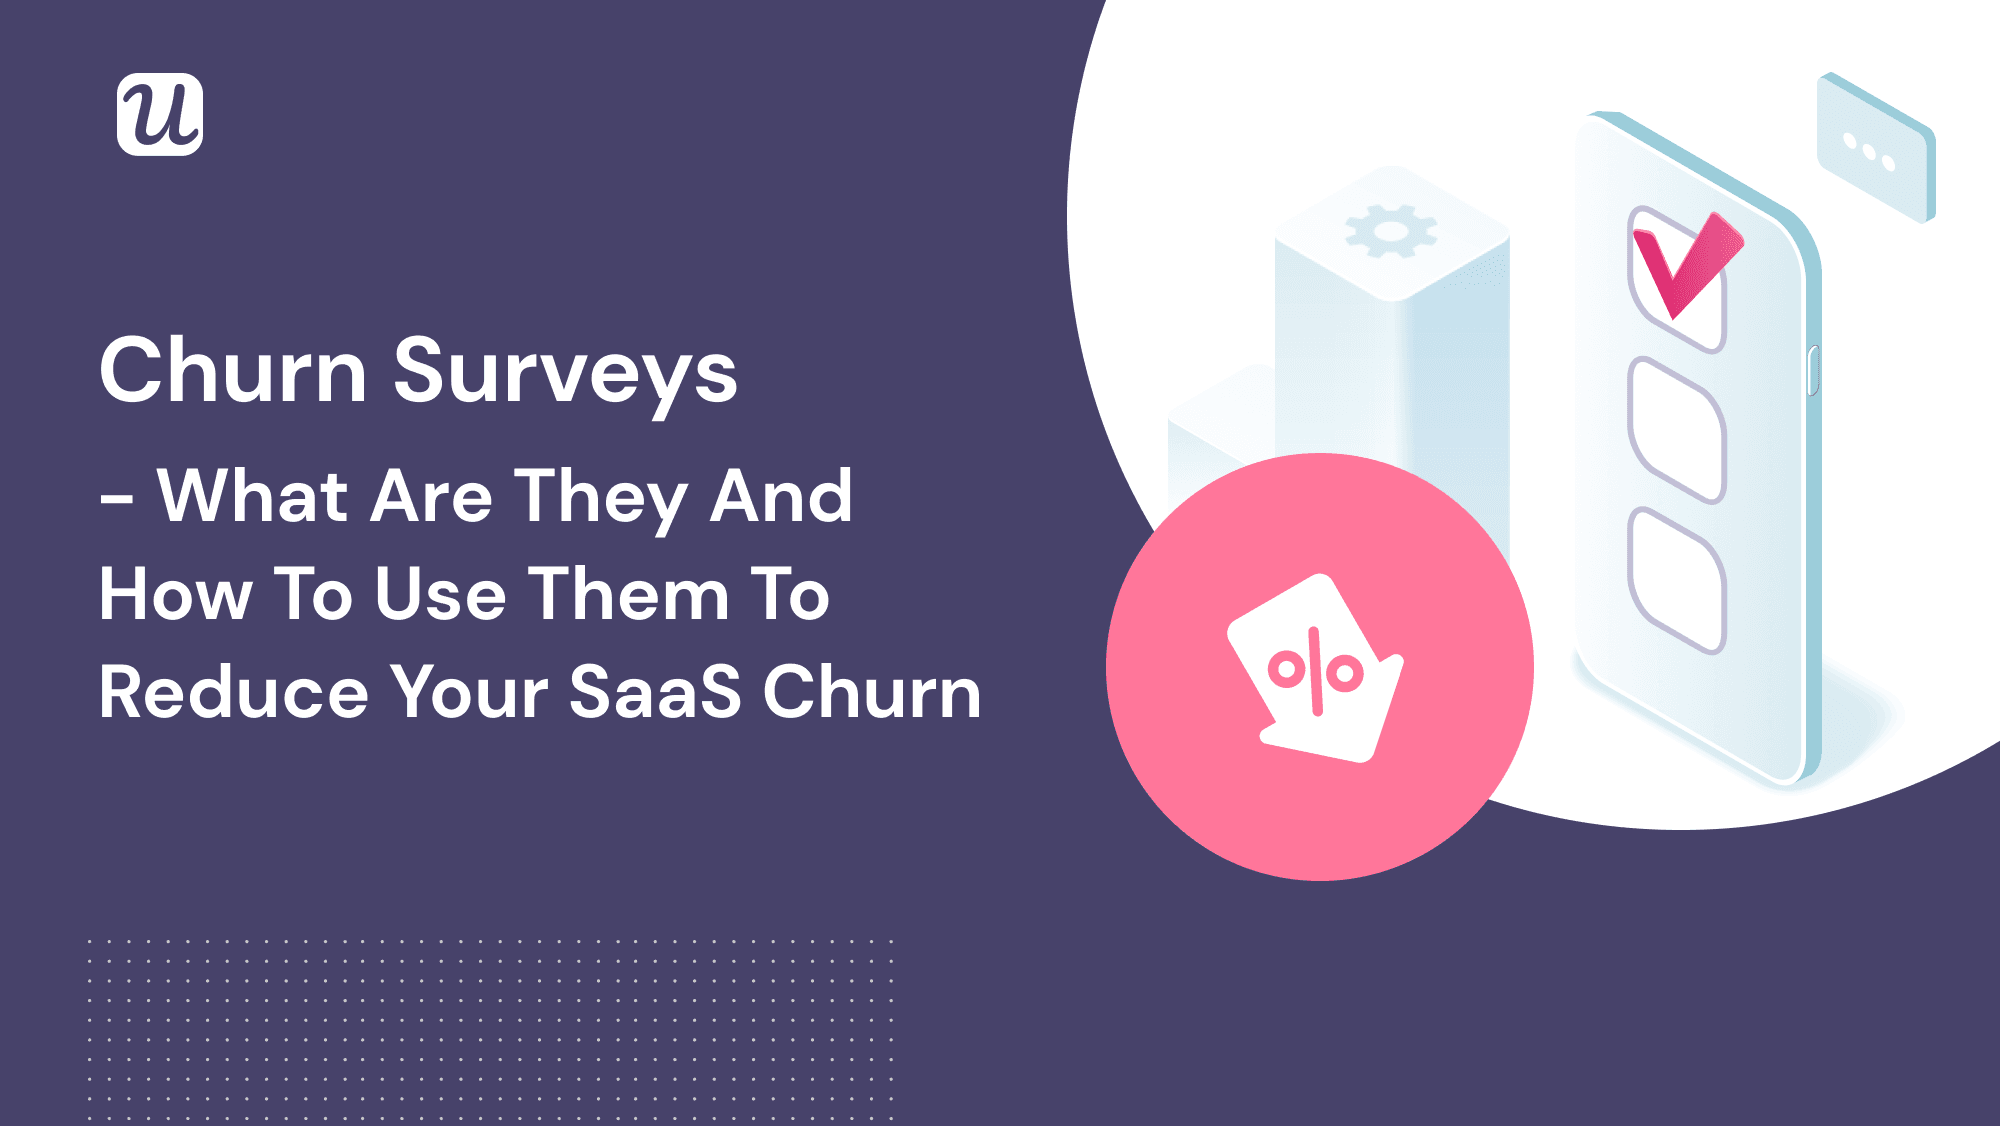 Churn Surveys – What Are They and How to Use Them to Reduce Your SaaS Churn